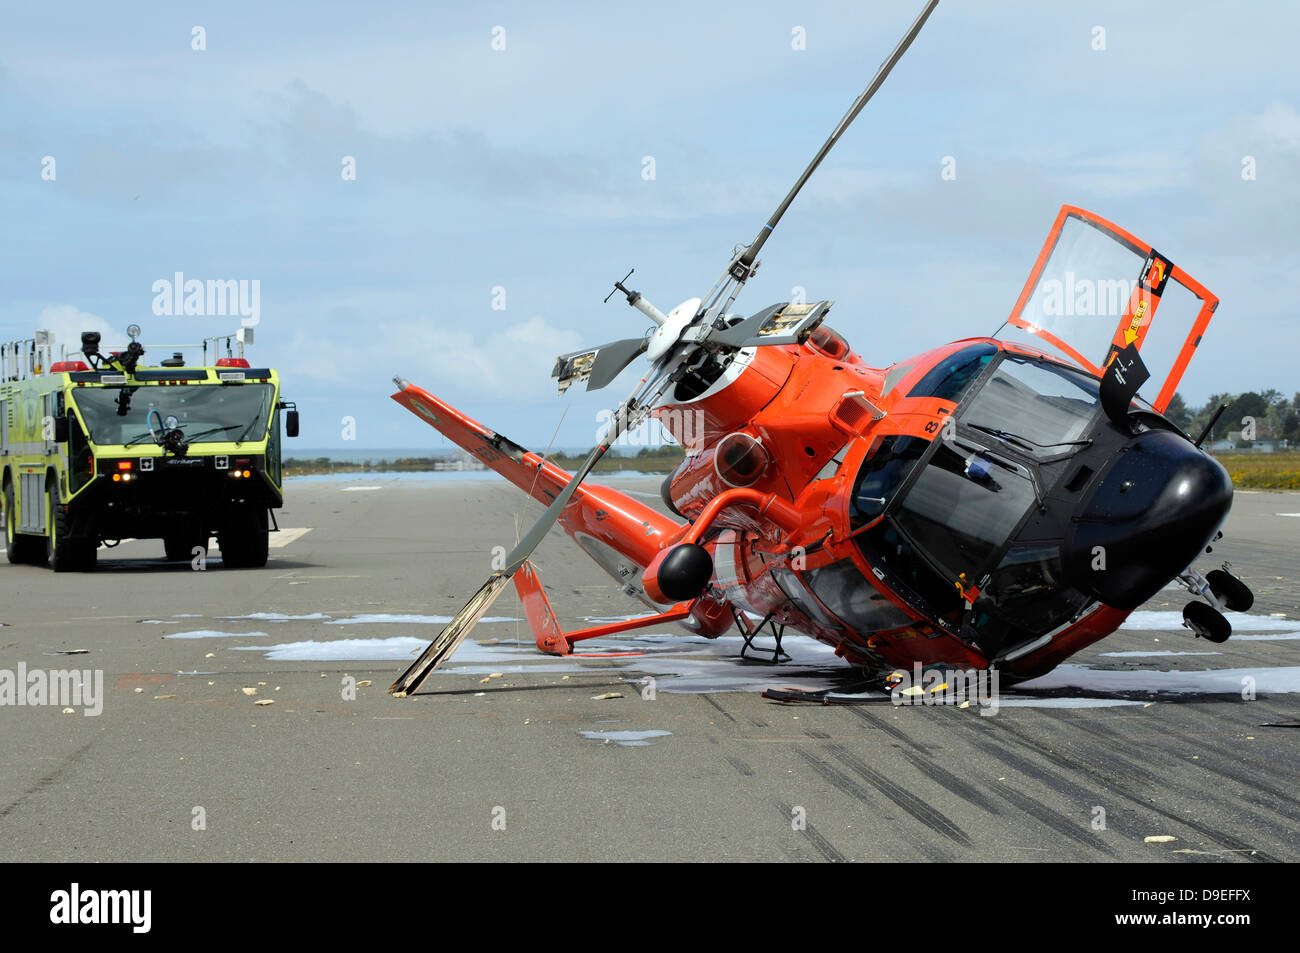 A U S  Coast Guard MH-65 Dolphin helicopter lays on its side